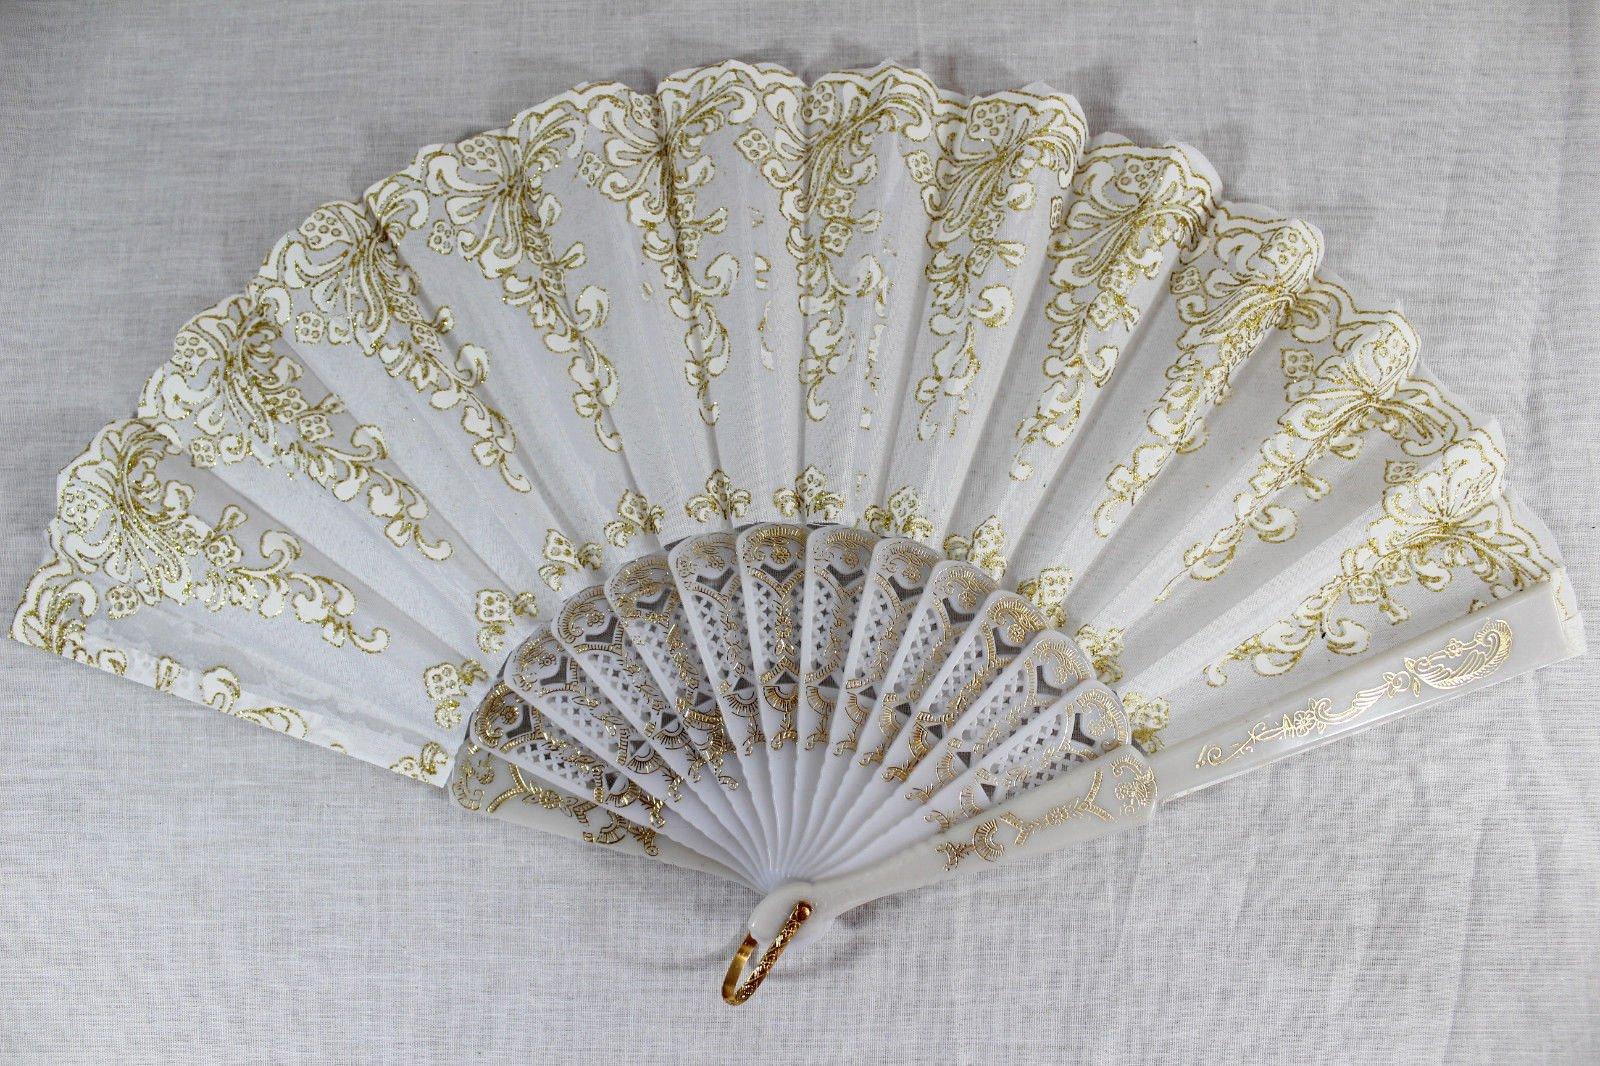 White Vintage Spanish Style Dance Party Wedding Lace Folding Hand Held Flower Fan